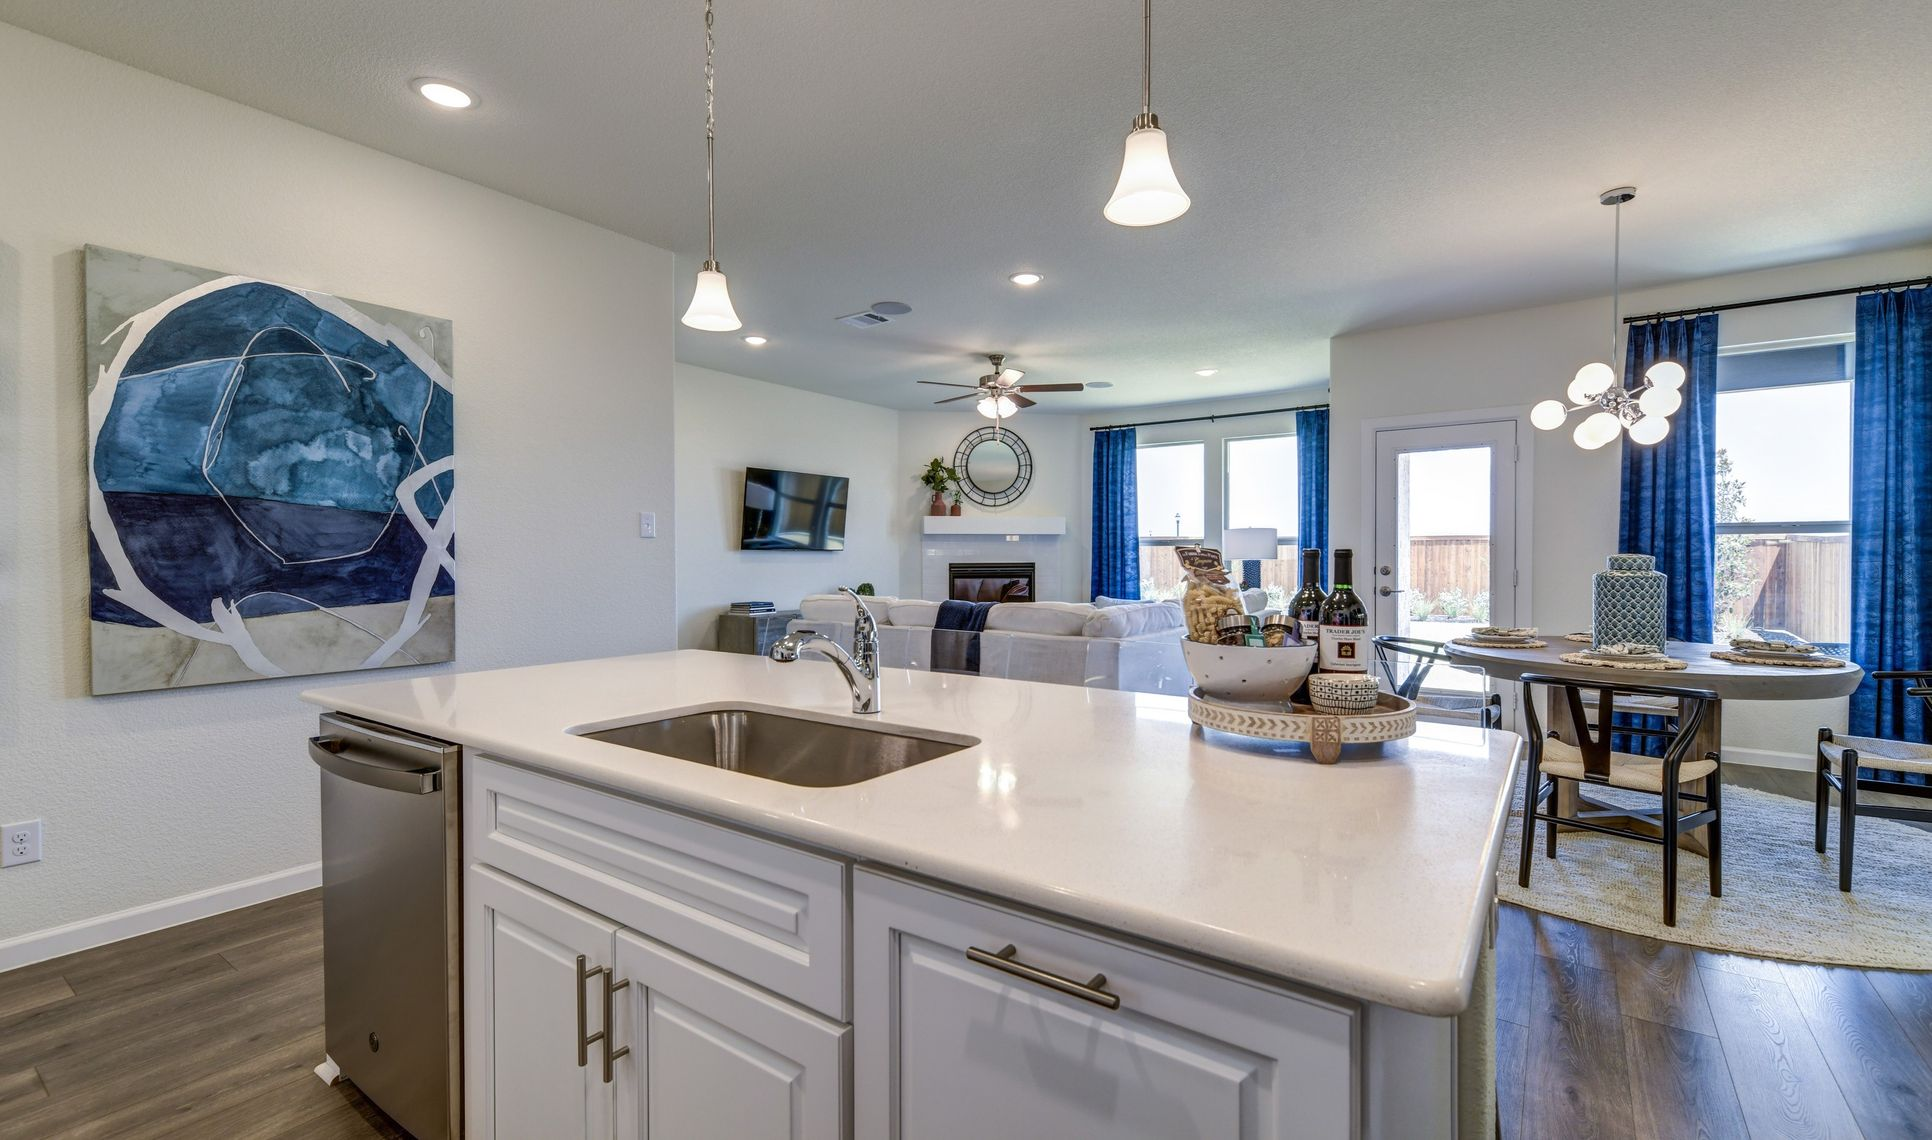 Interior:Welcoming kitchen and dining area